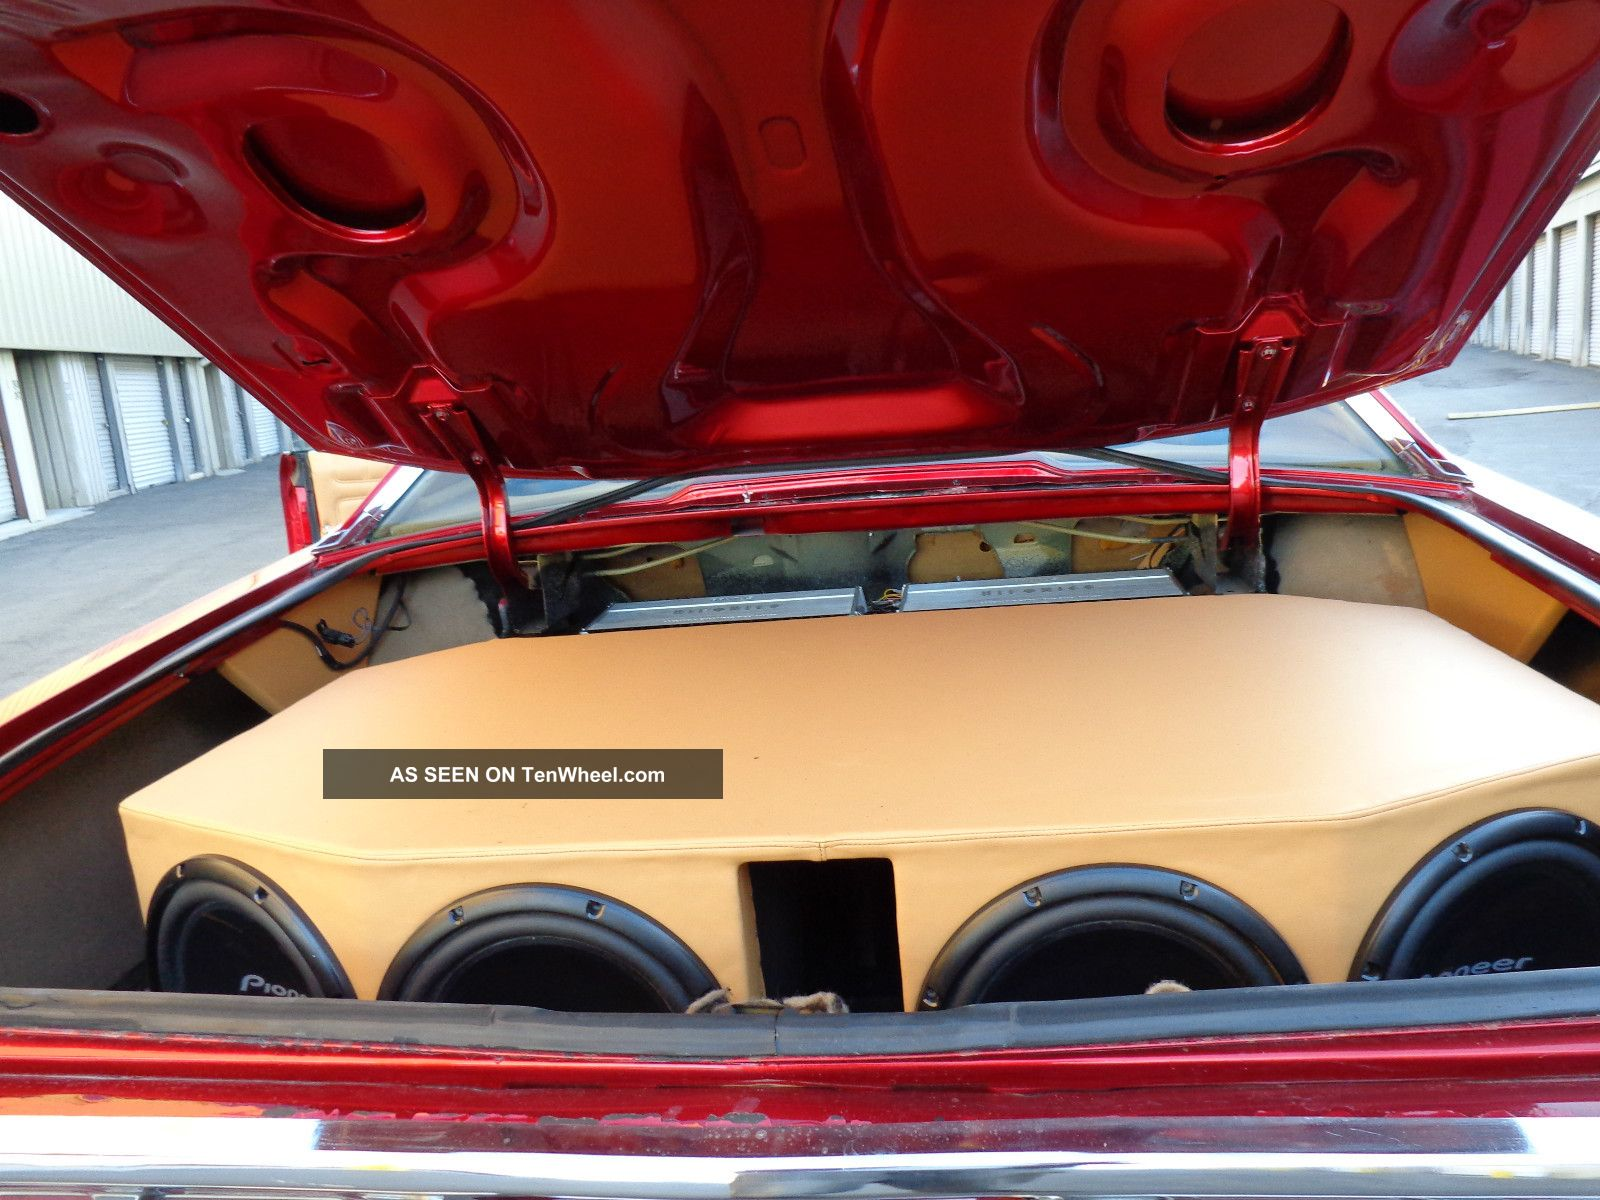 1973 chevrolet impala candy apple red paint peanut butter interior 26in rims. Black Bedroom Furniture Sets. Home Design Ideas